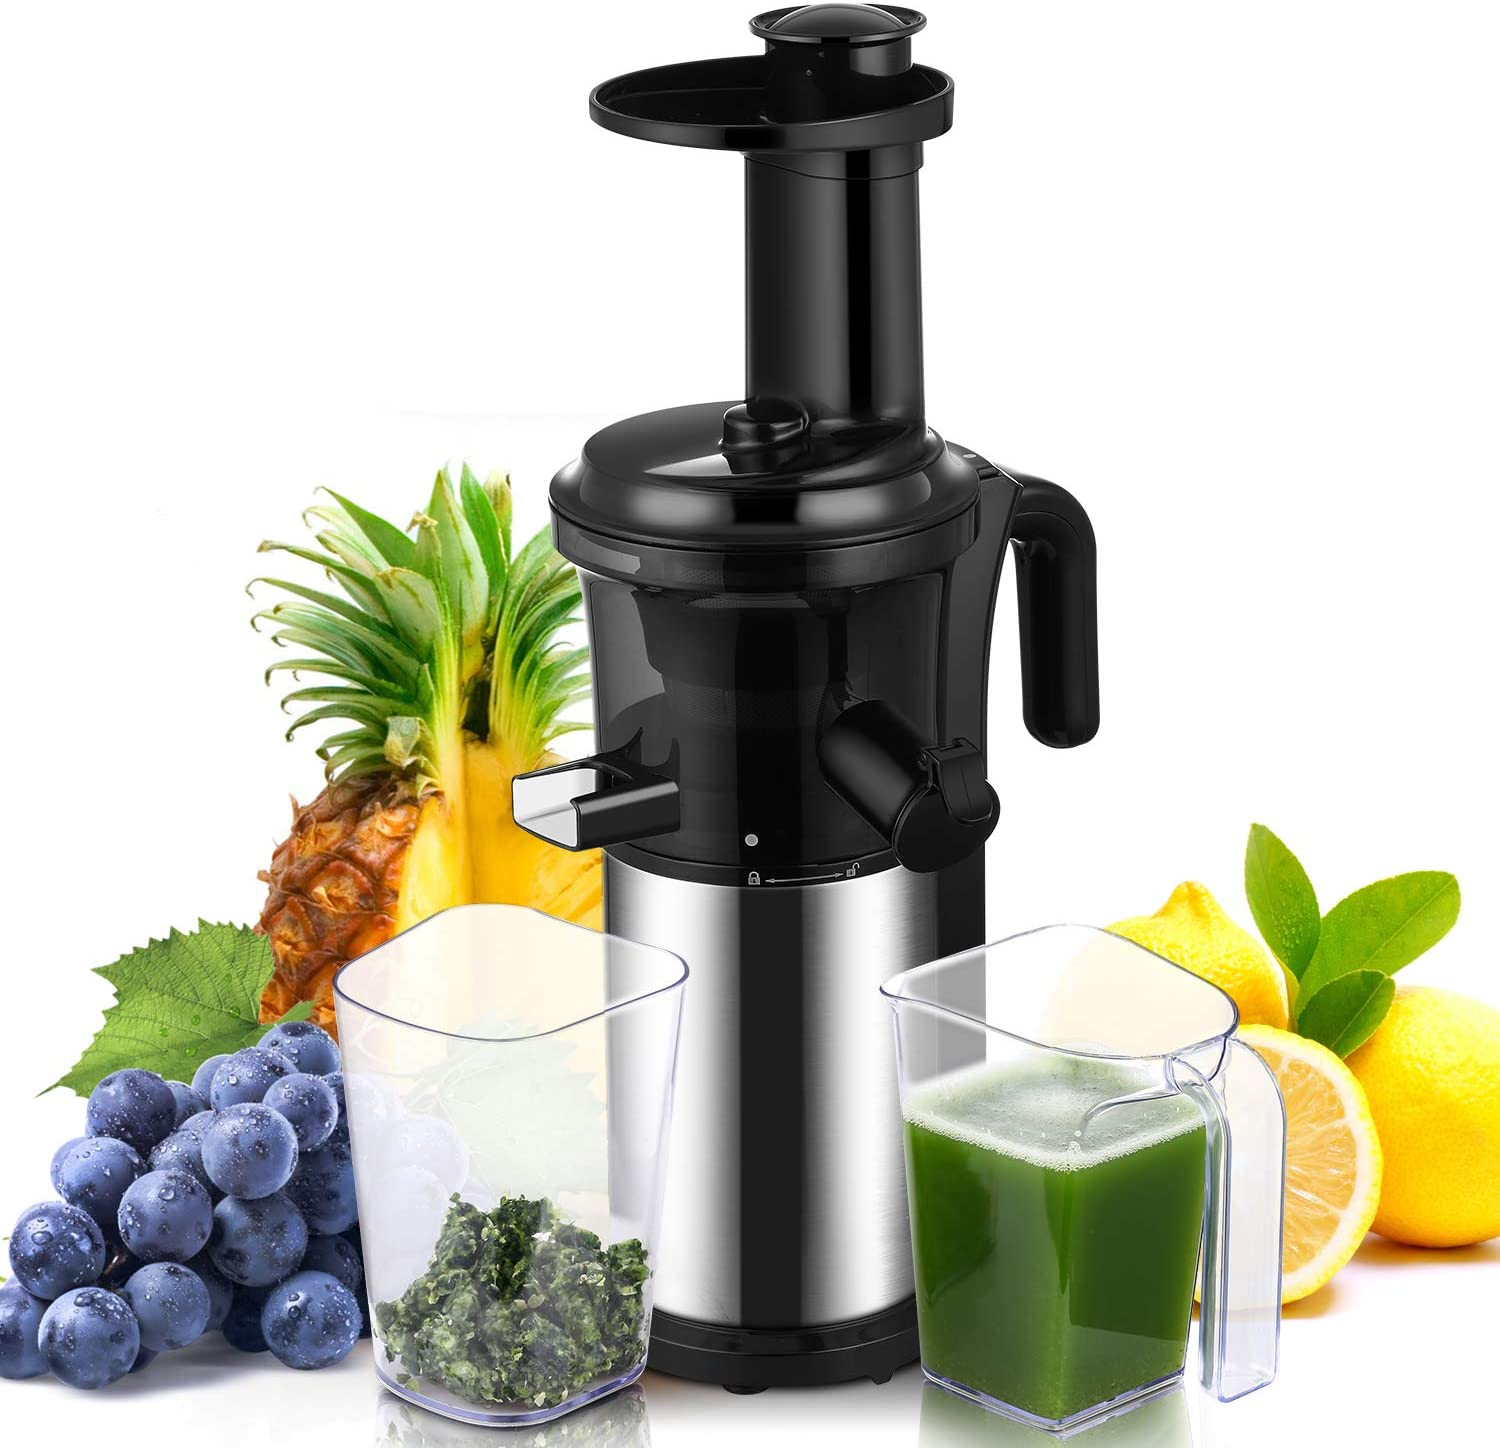 Amazon coupon code for Slow Masticating Juicer Easy to Clean